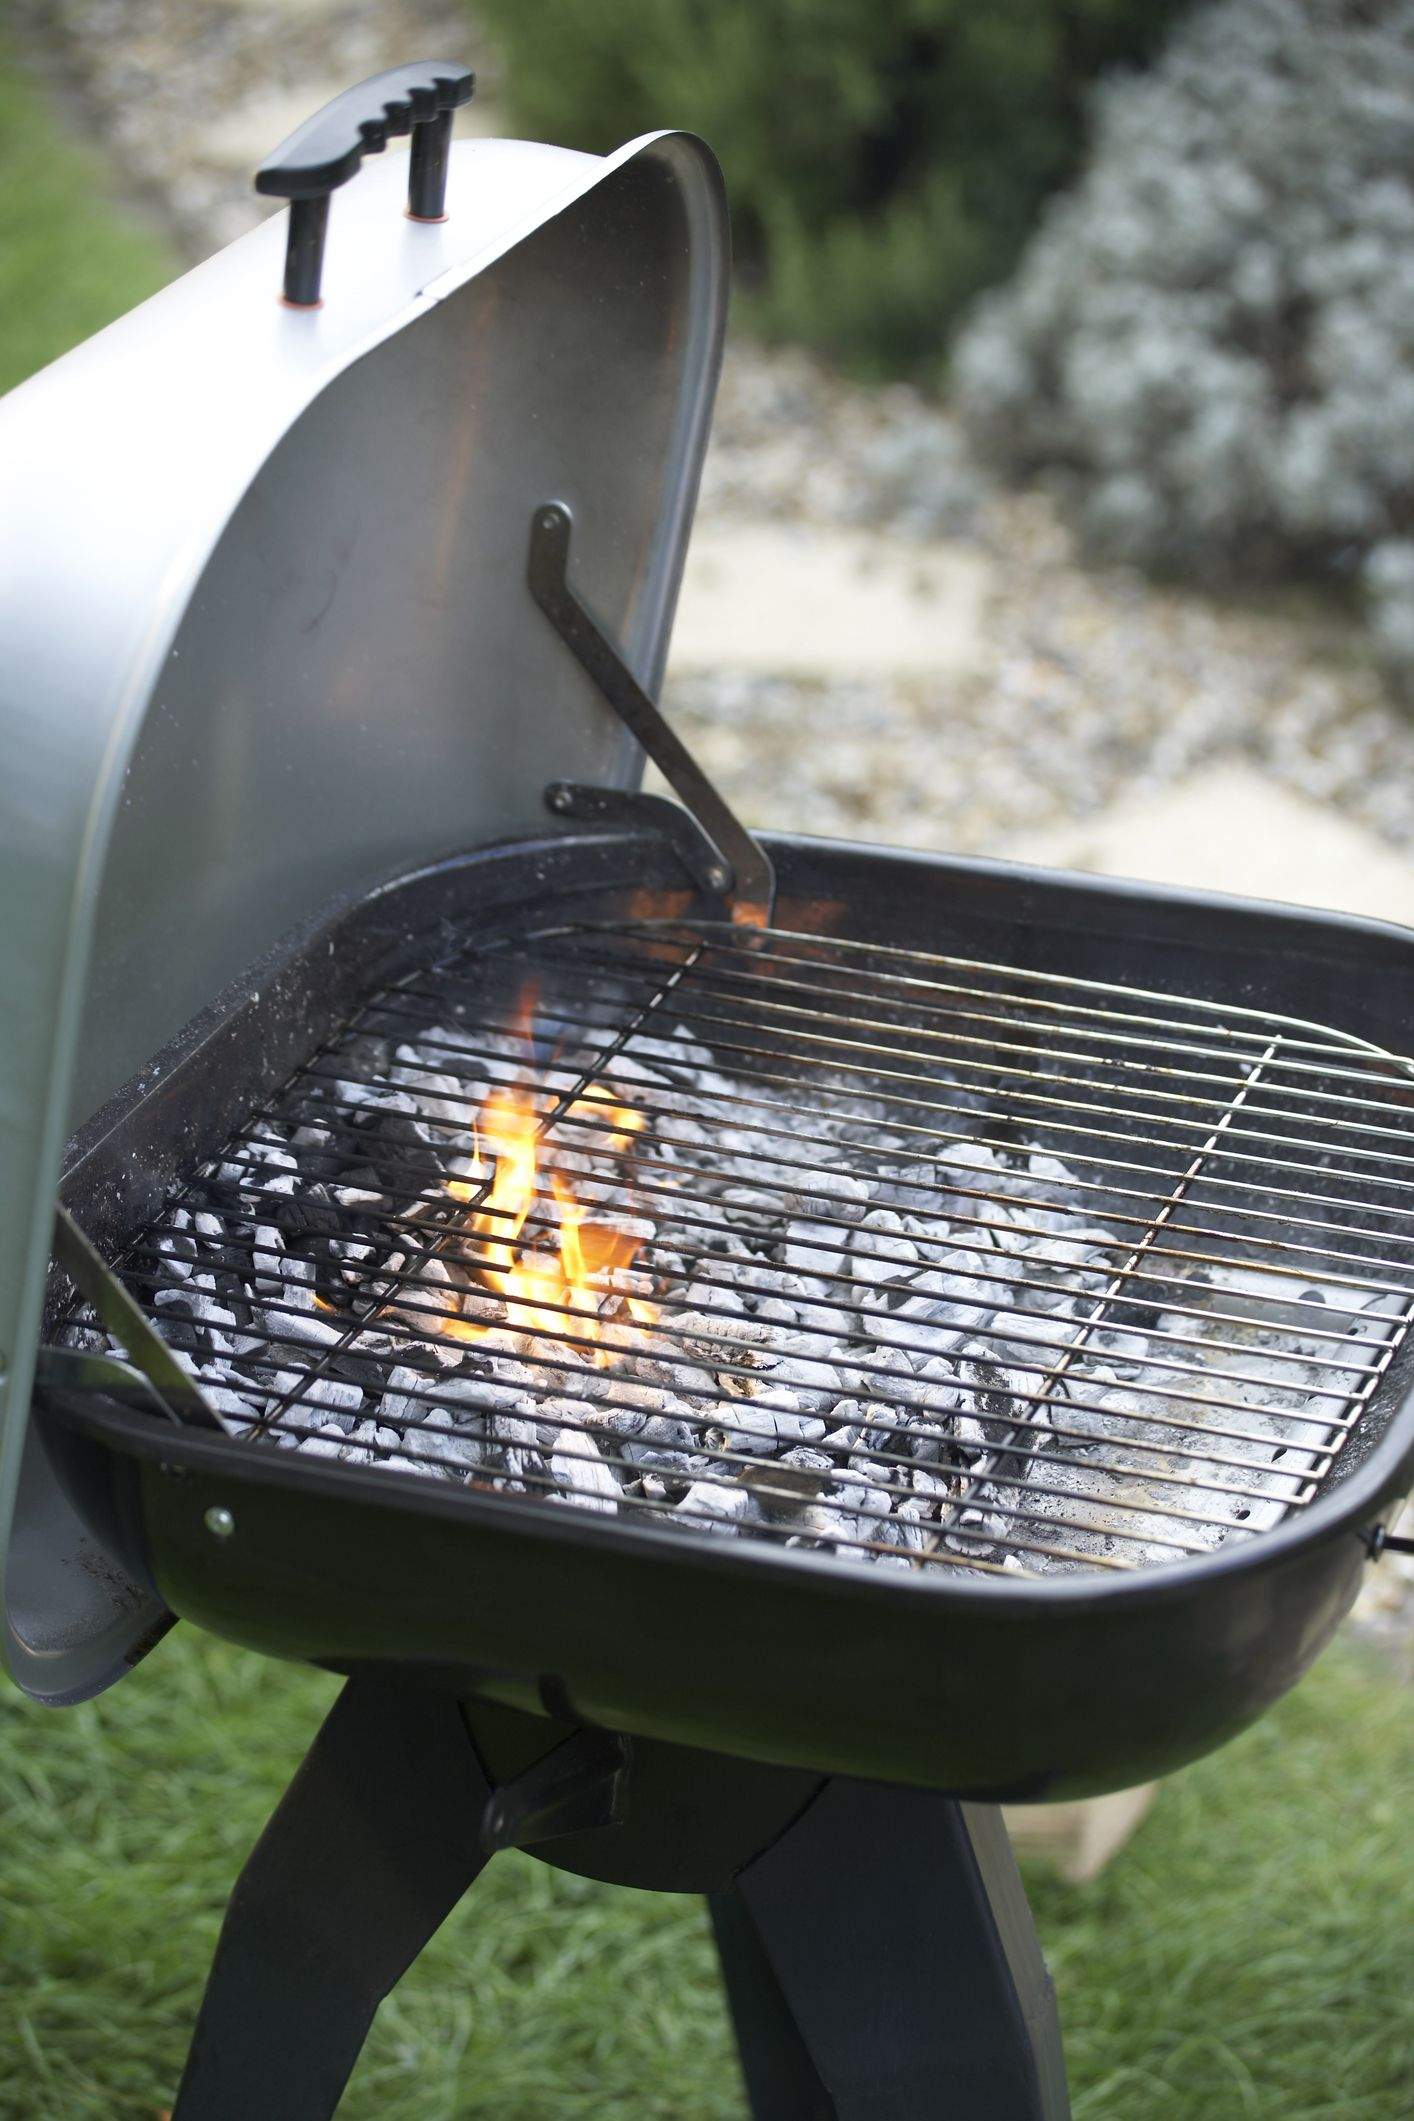 Barbecue grill, lid open